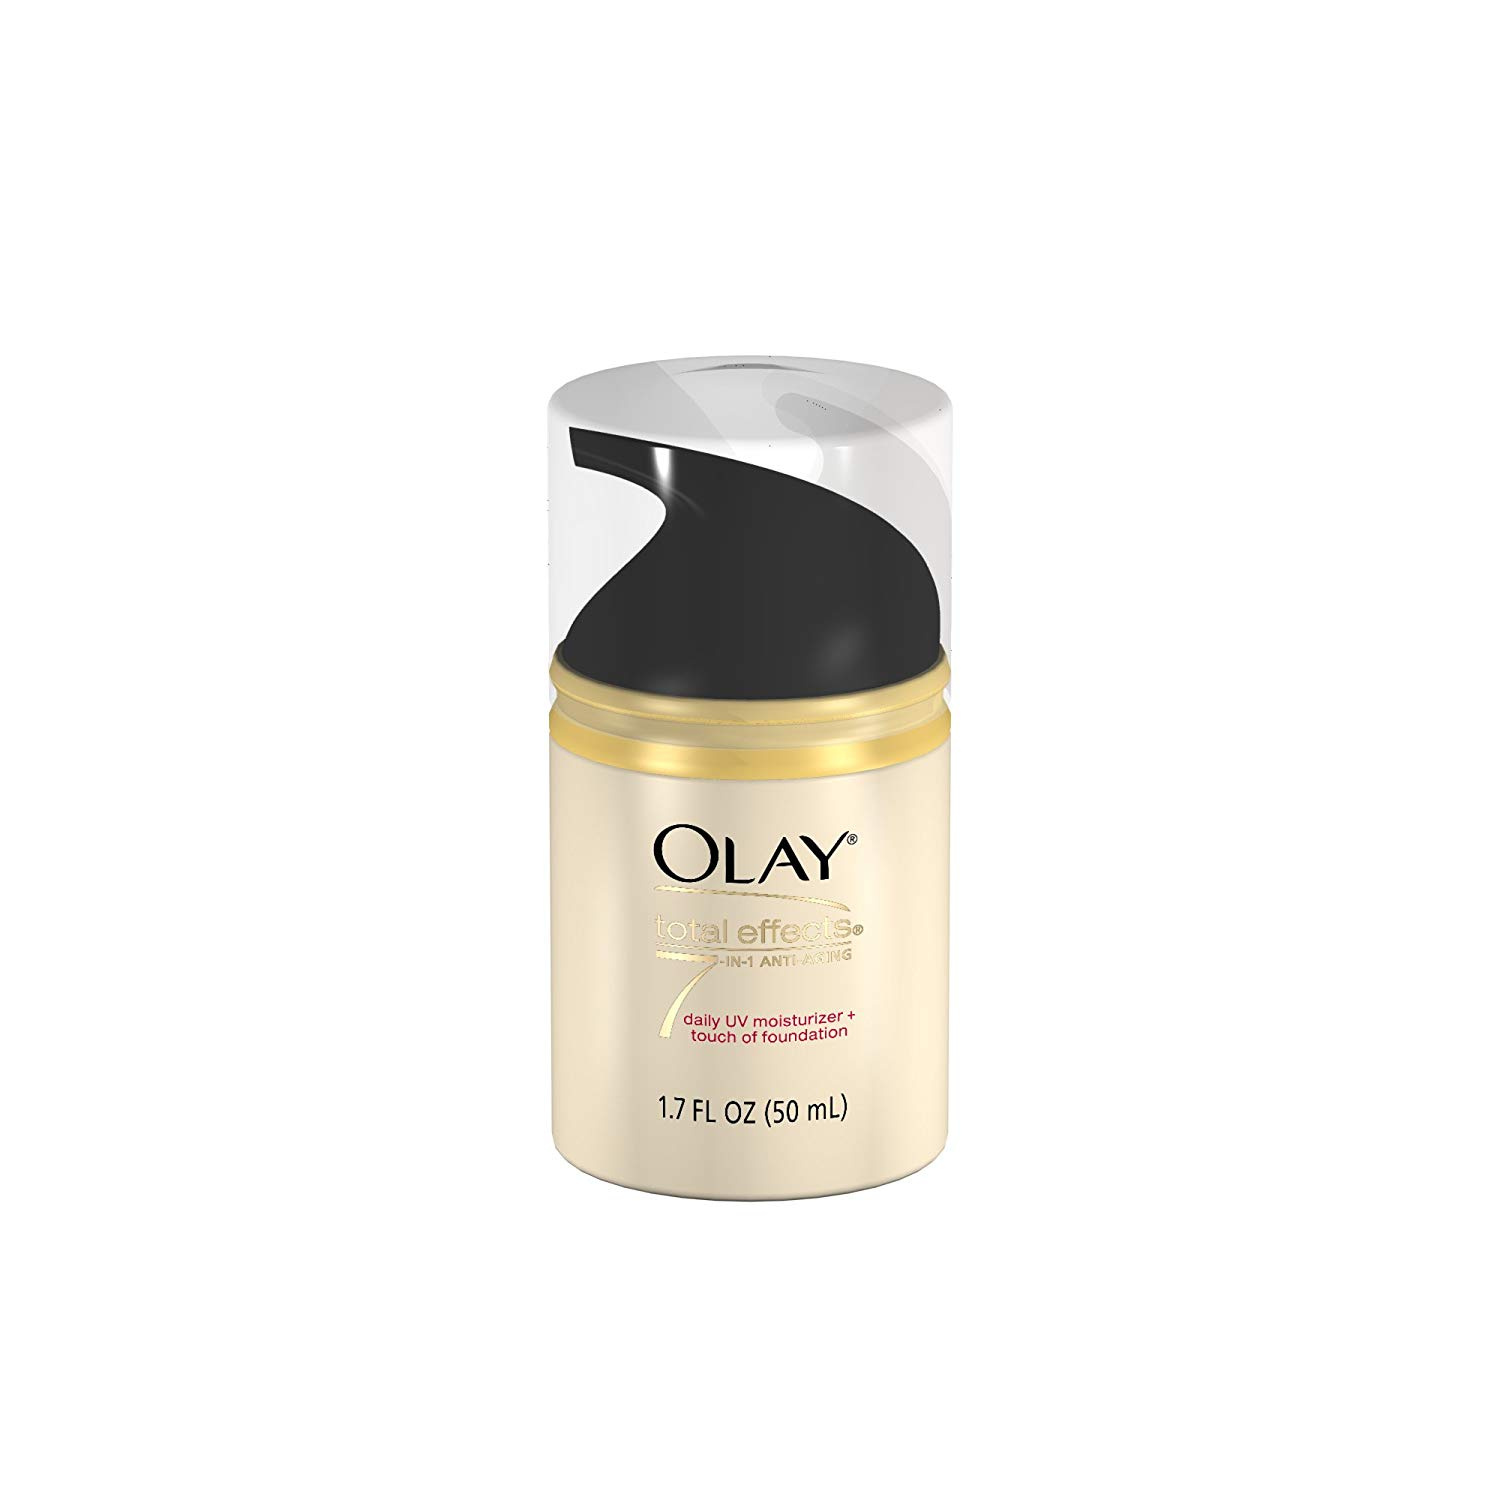 Olay Total Effects 7 Beauty Buy Online From In One Day Cream Touch Of Foundation Spf 15 50gr